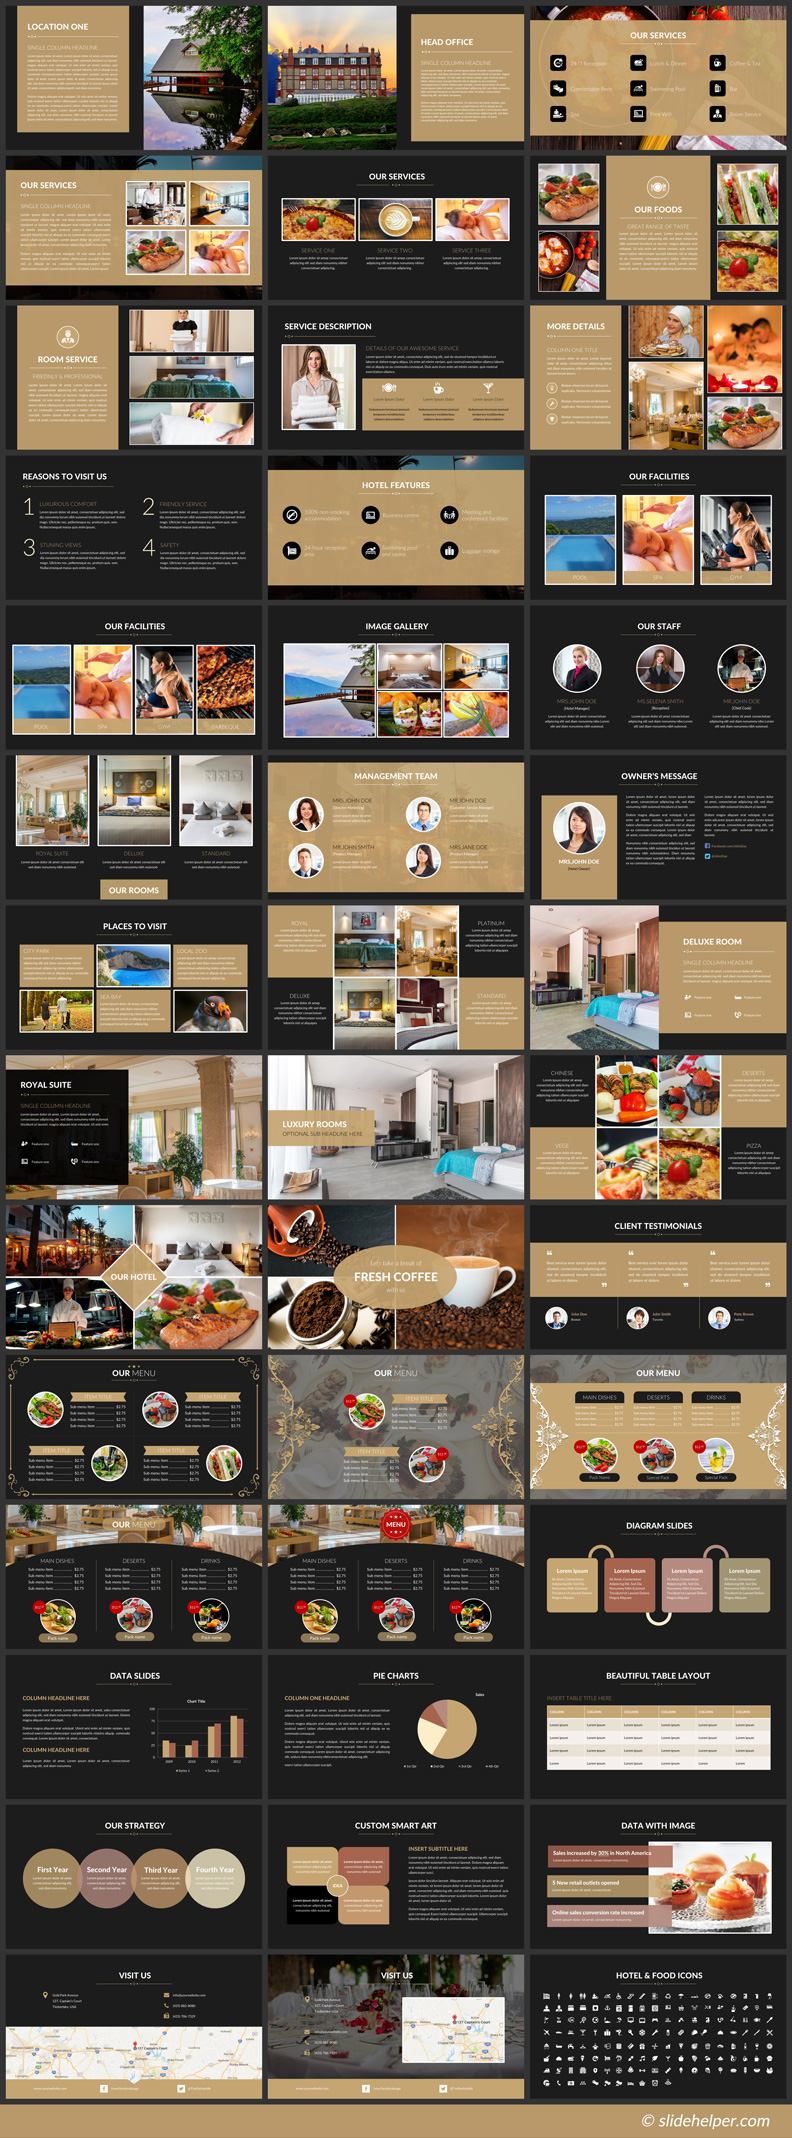 Luxury Hotel Powerpoint Template With Hotel Themed Icons Ppt Slides Powerpoint Presentation Templates Powerpoint Templates Infographic Powerpoint